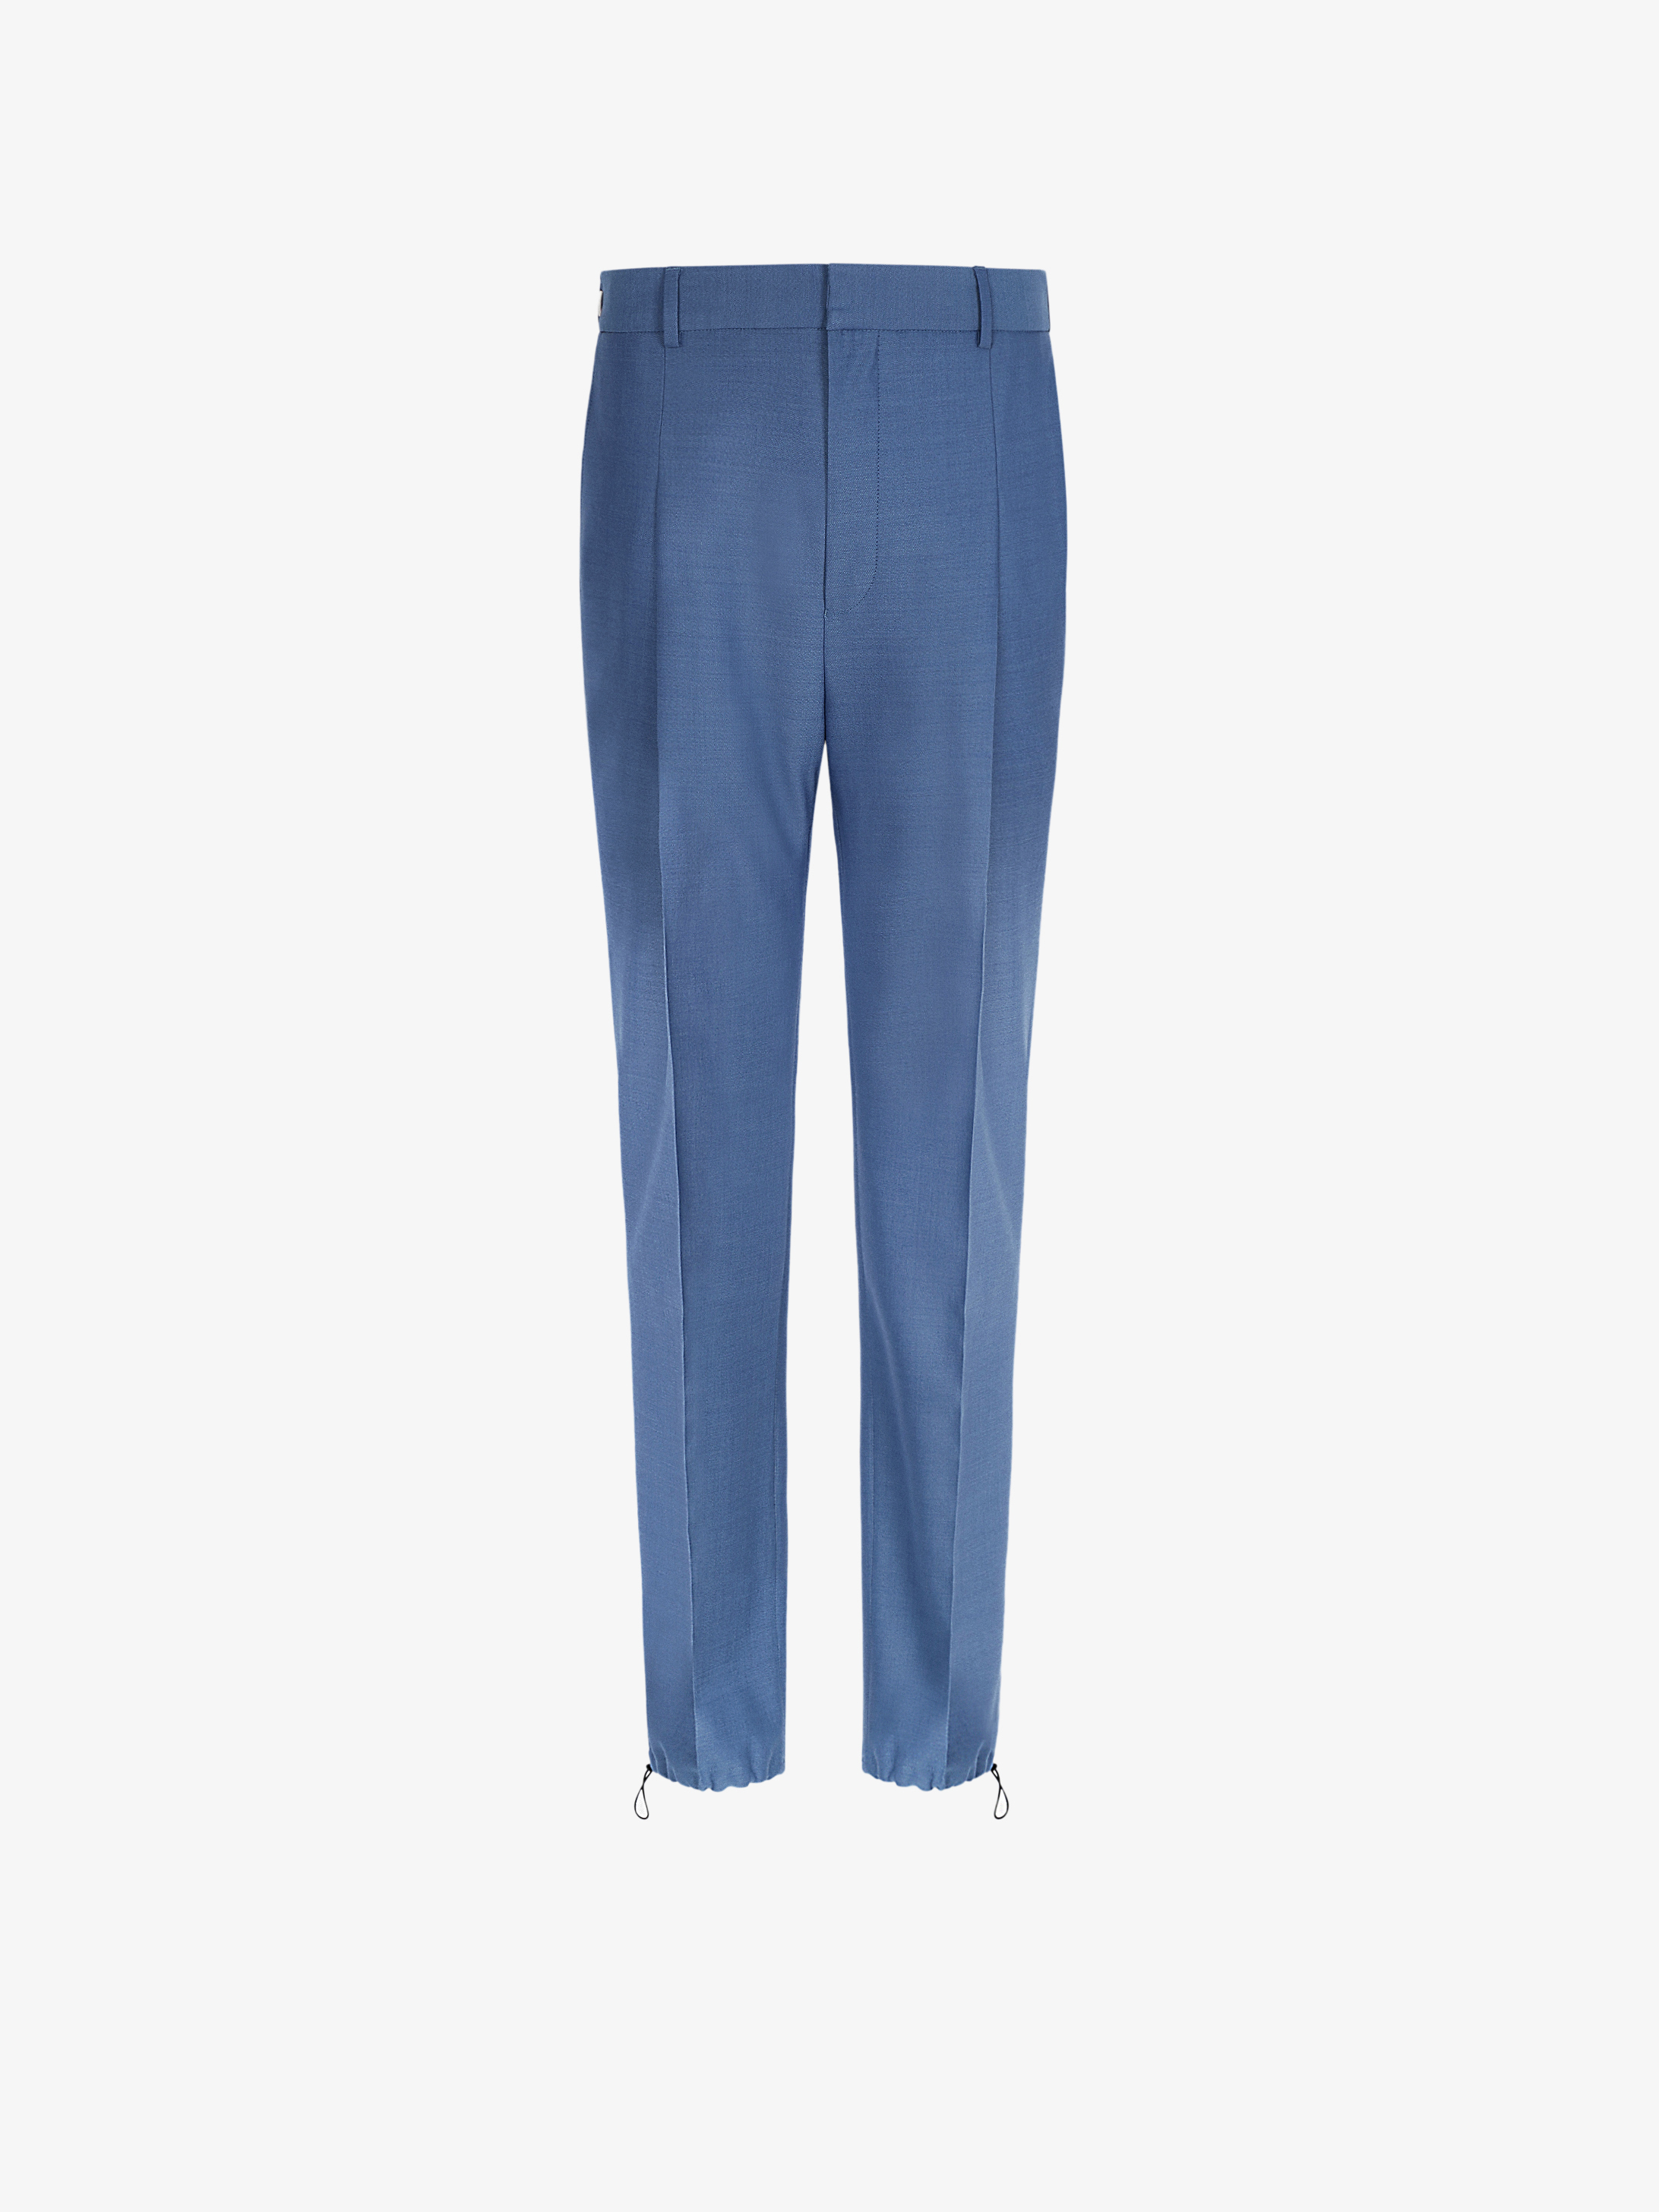 Jogger pants in wool with elastic details